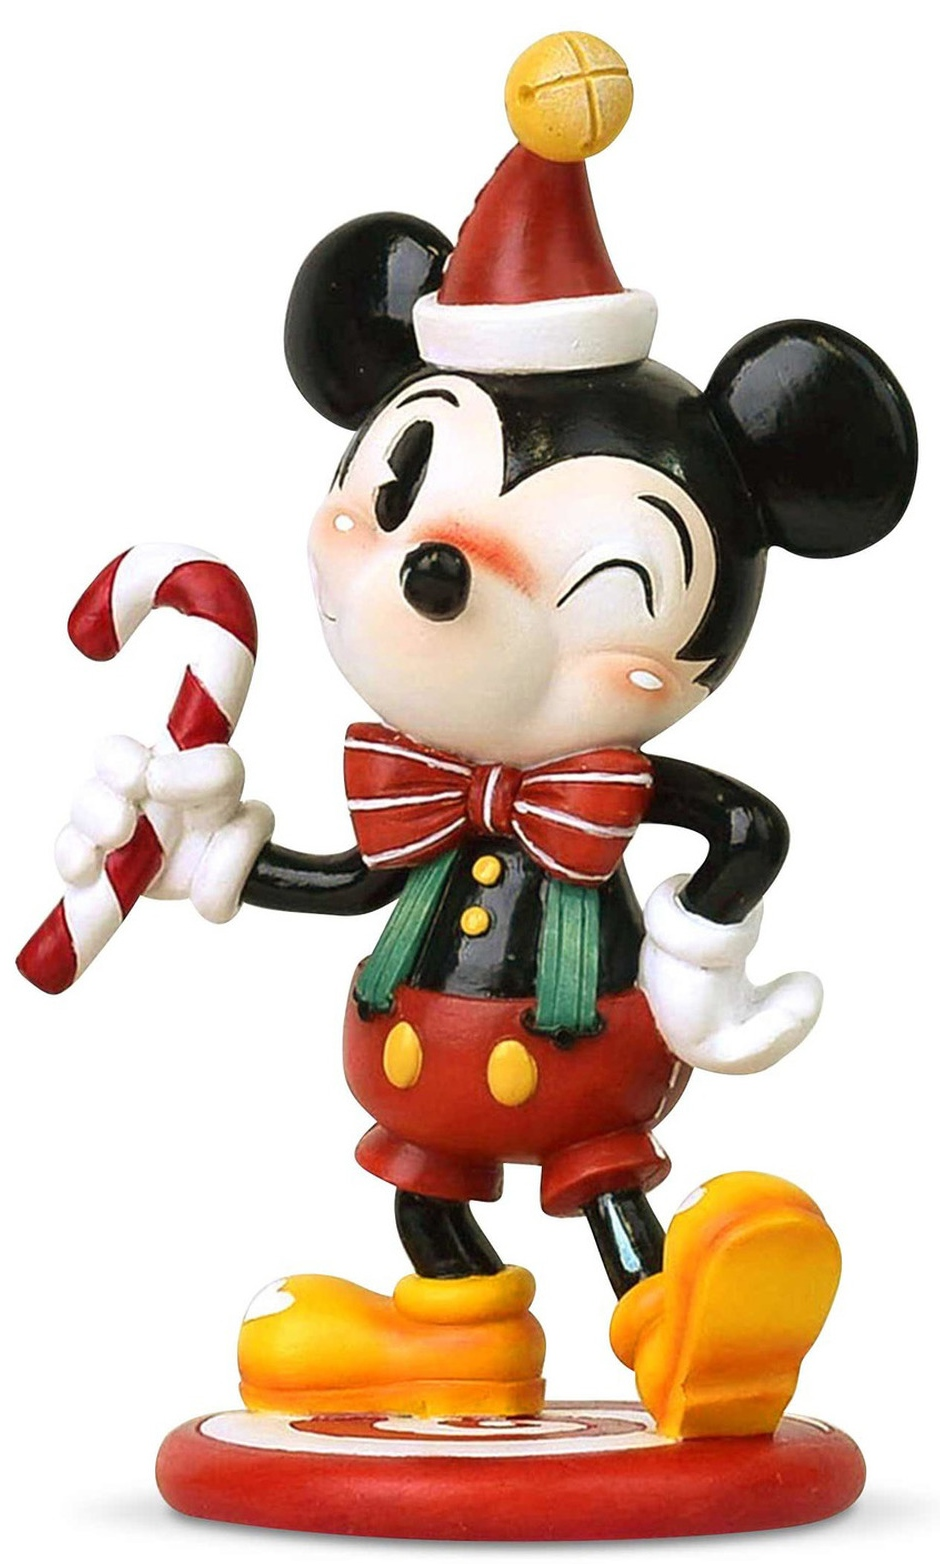 World of Miss Mindy 6003765 Christmas Mickey Figurine